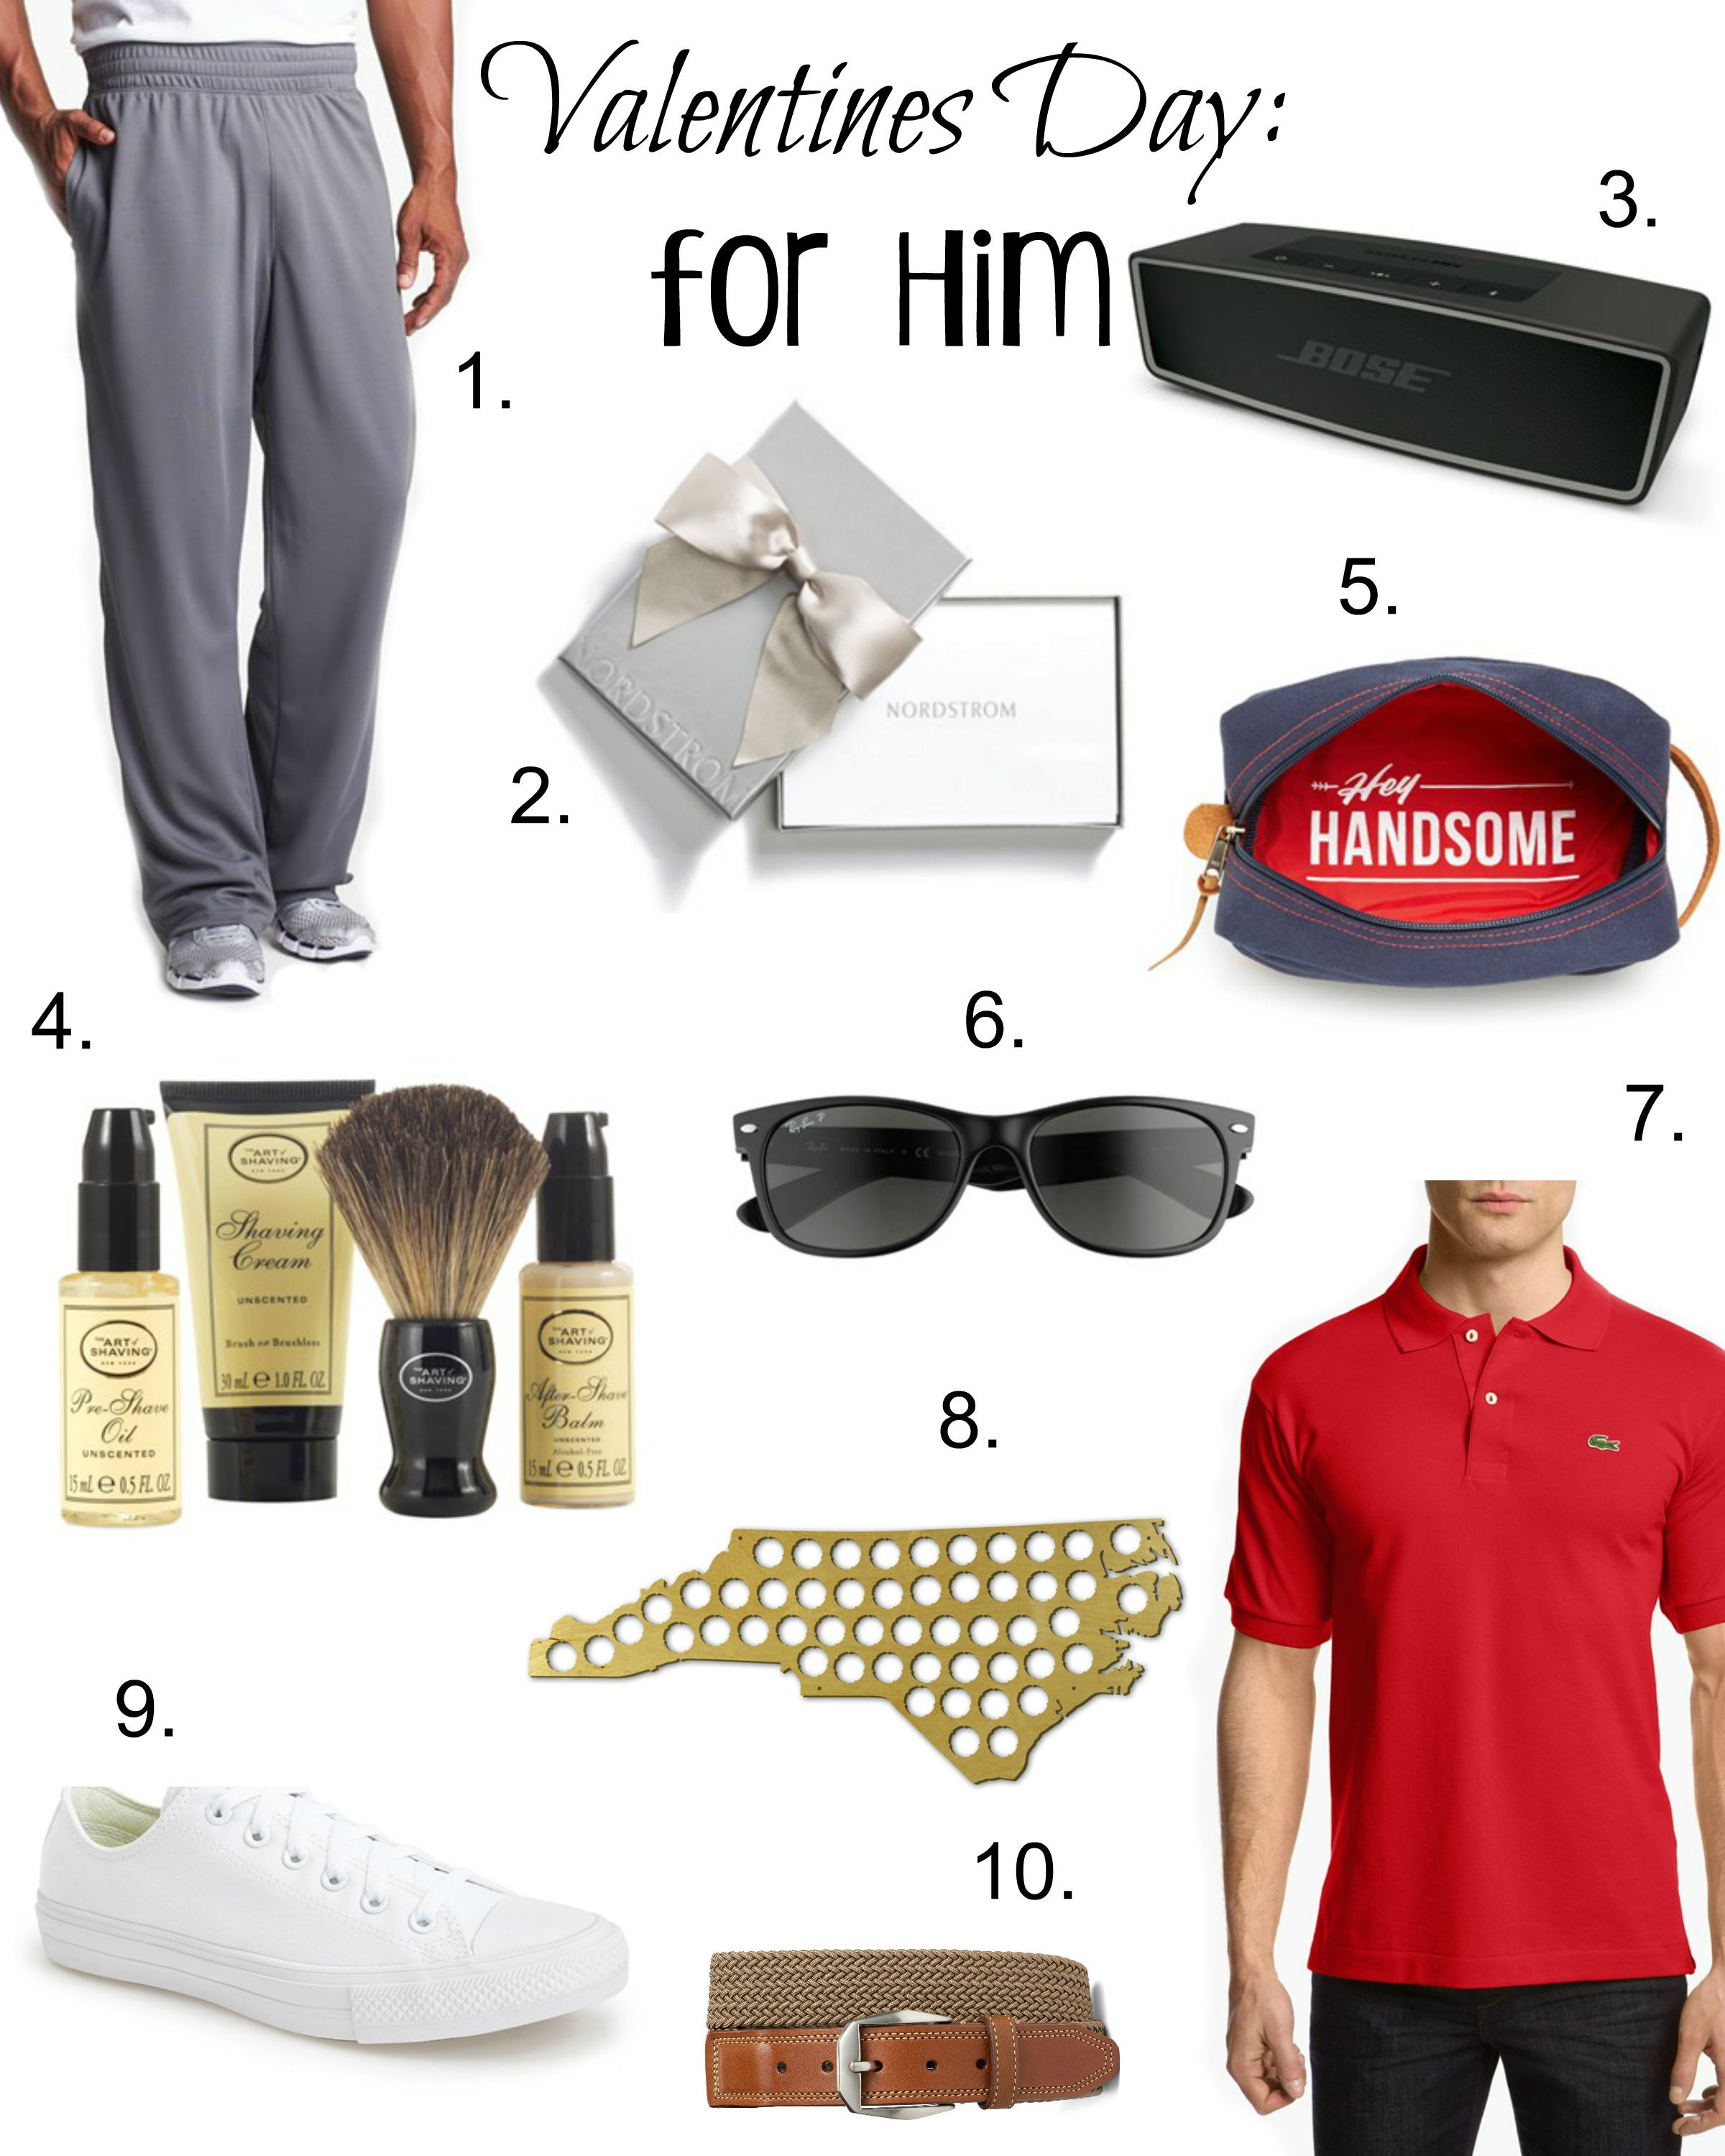 10 Of The Best Valentines Day Gifts For Him By Lifestyle Blogger Amy Coffee Beans